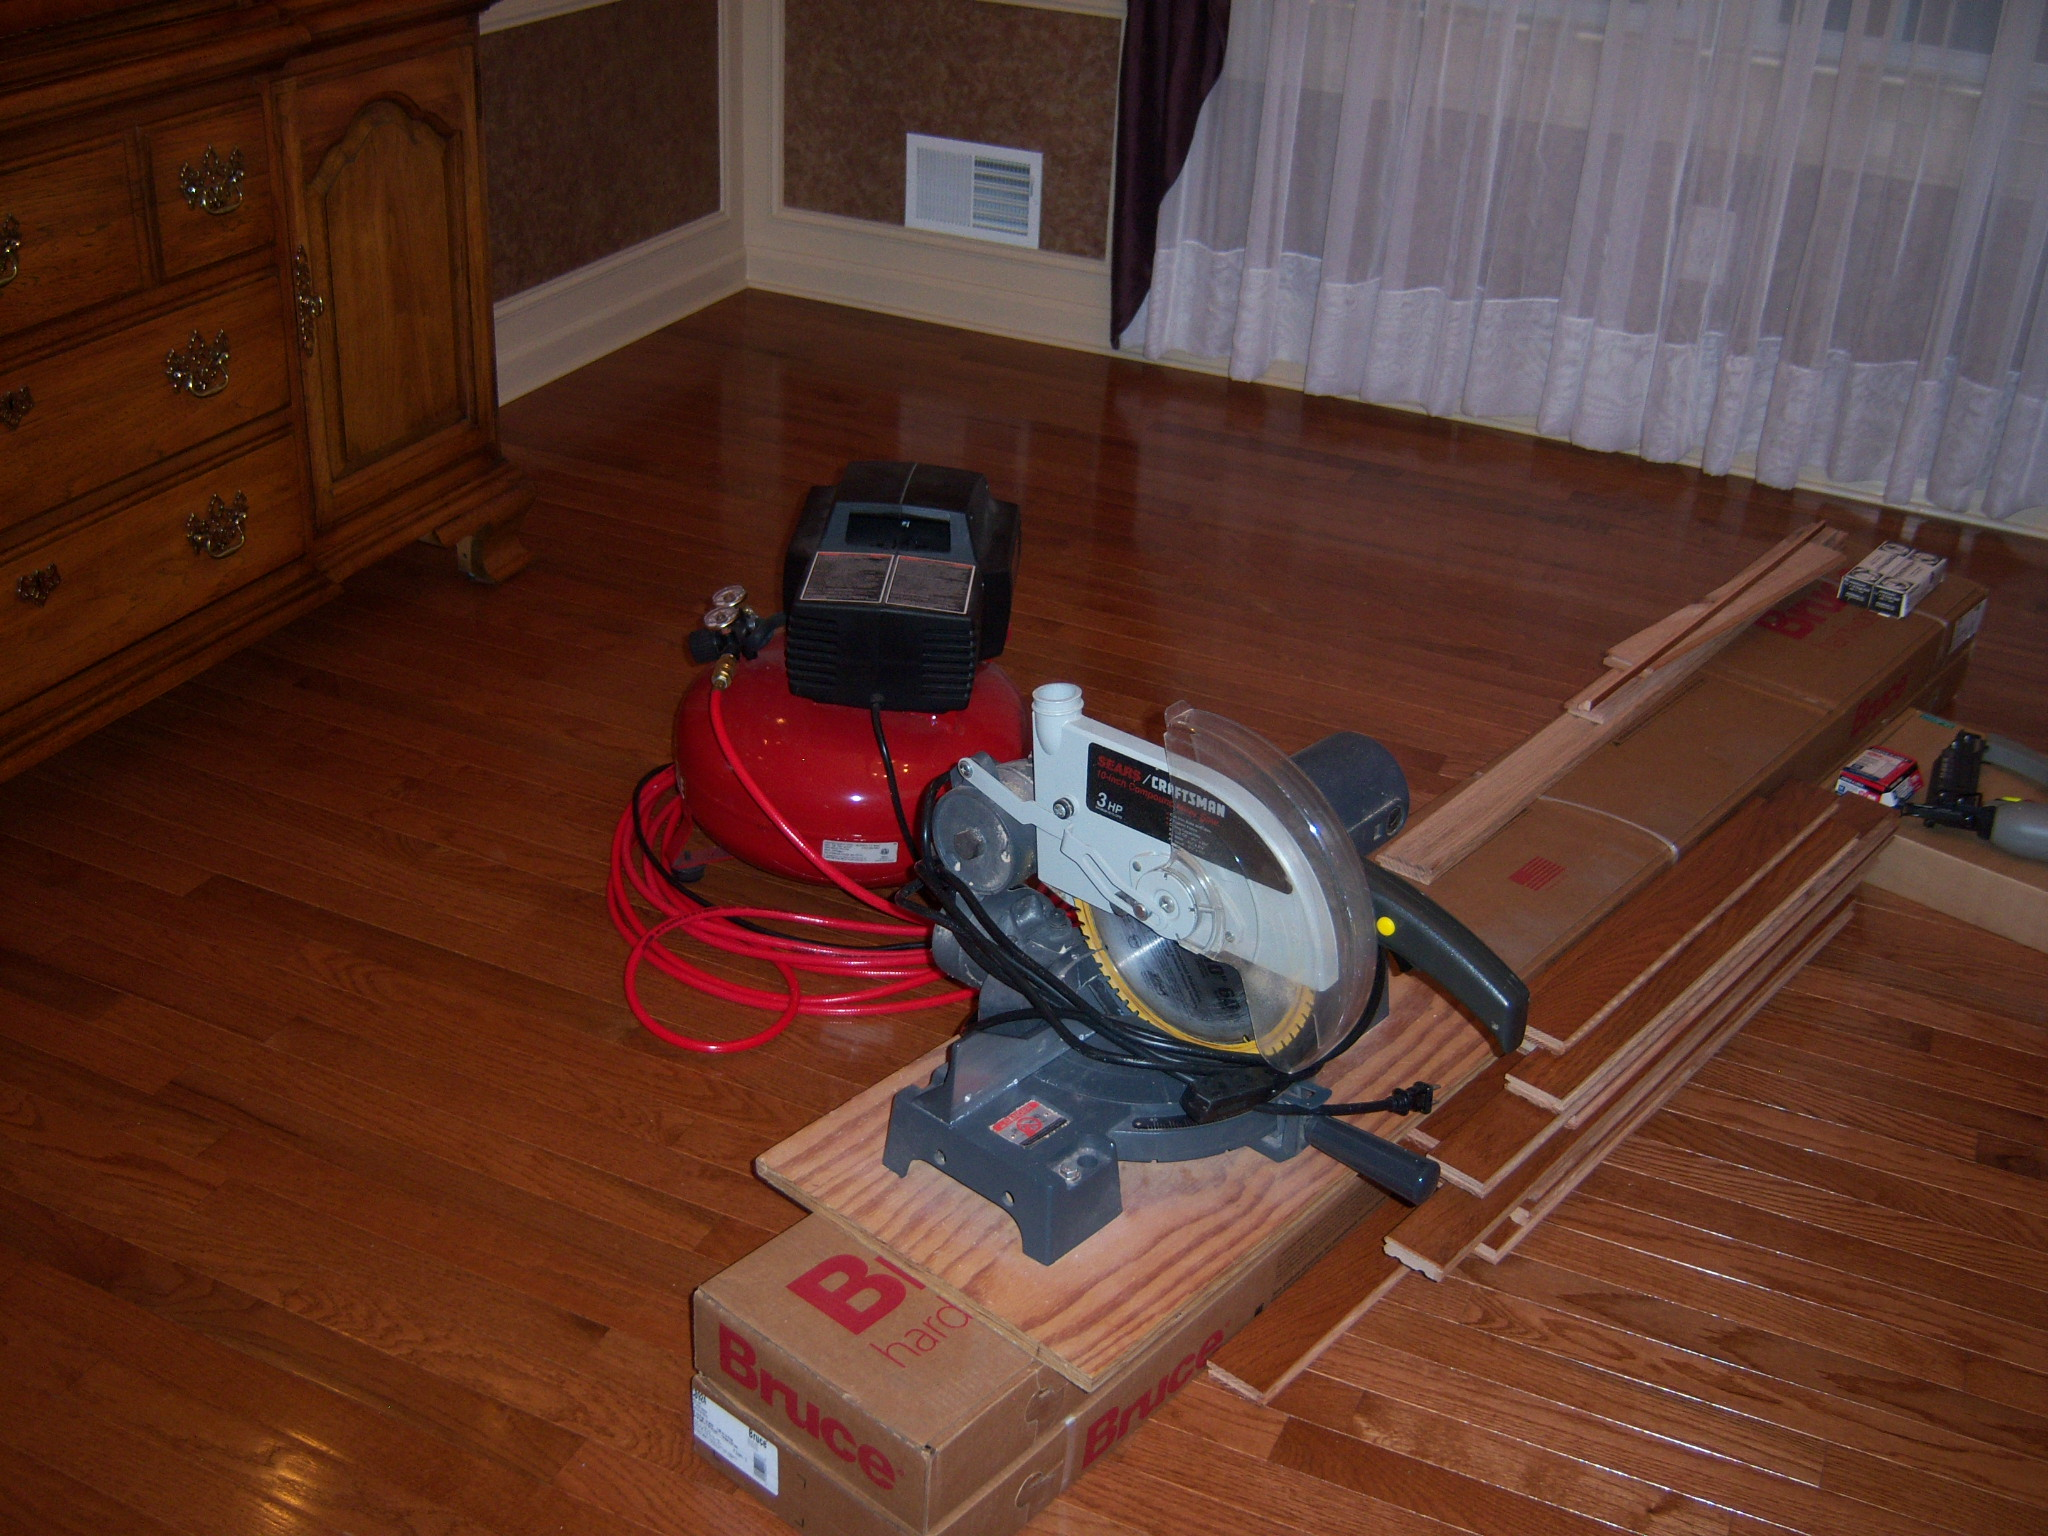 Preparing To Install Hardwood Flooring All About The House - Hardwood floor scraping tools